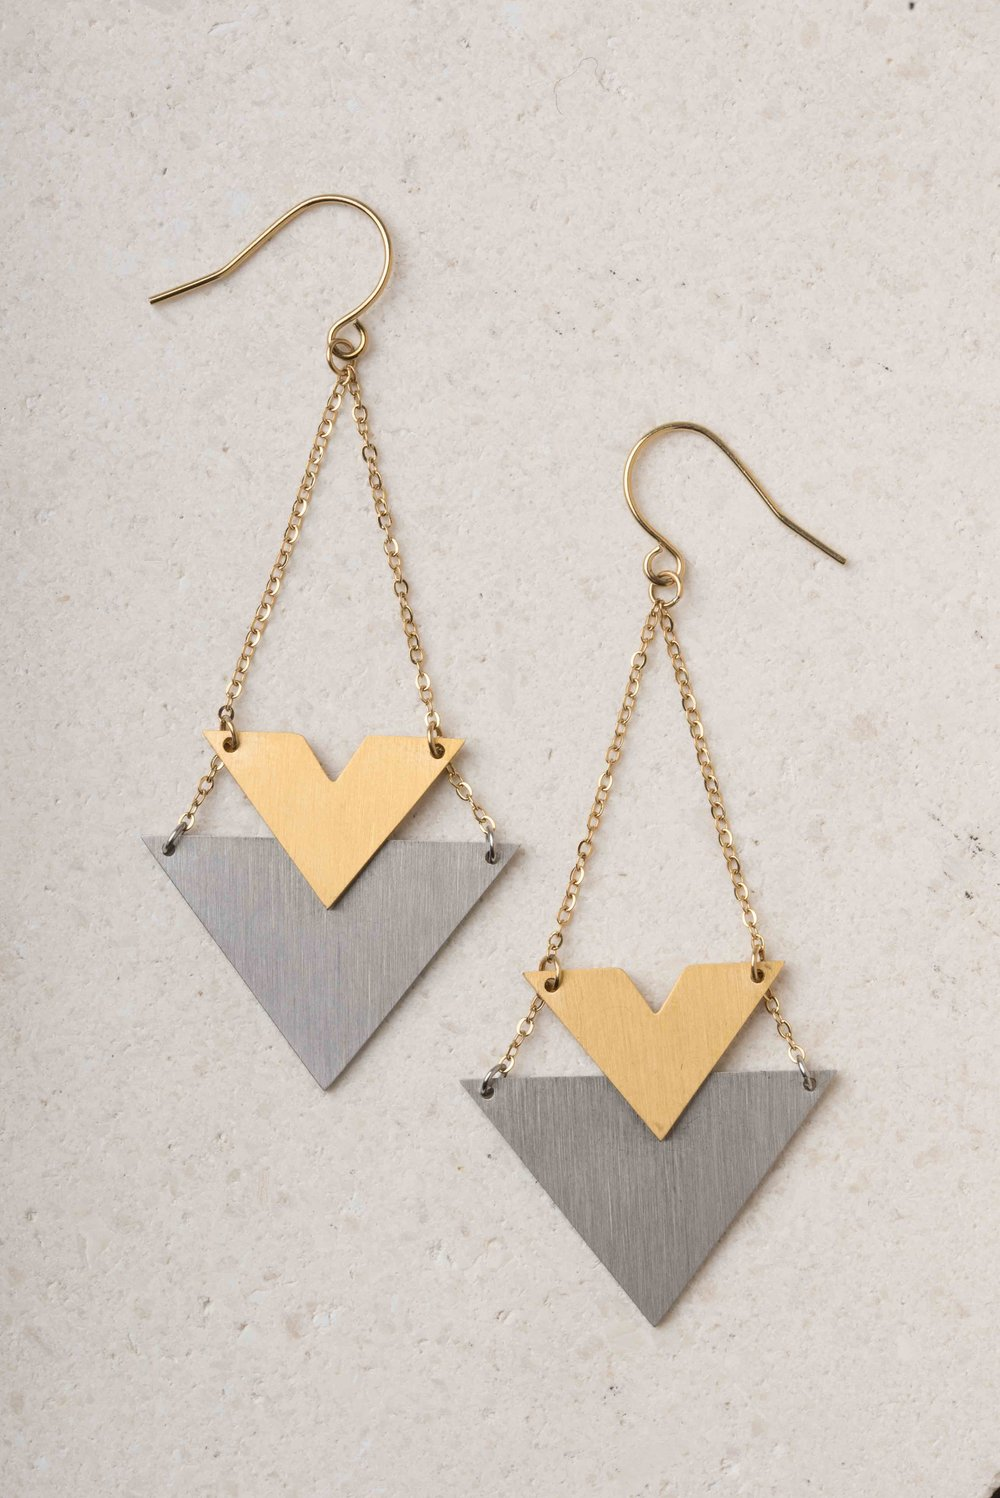 Wynne Stainless Steel Gold Earrings $38.99